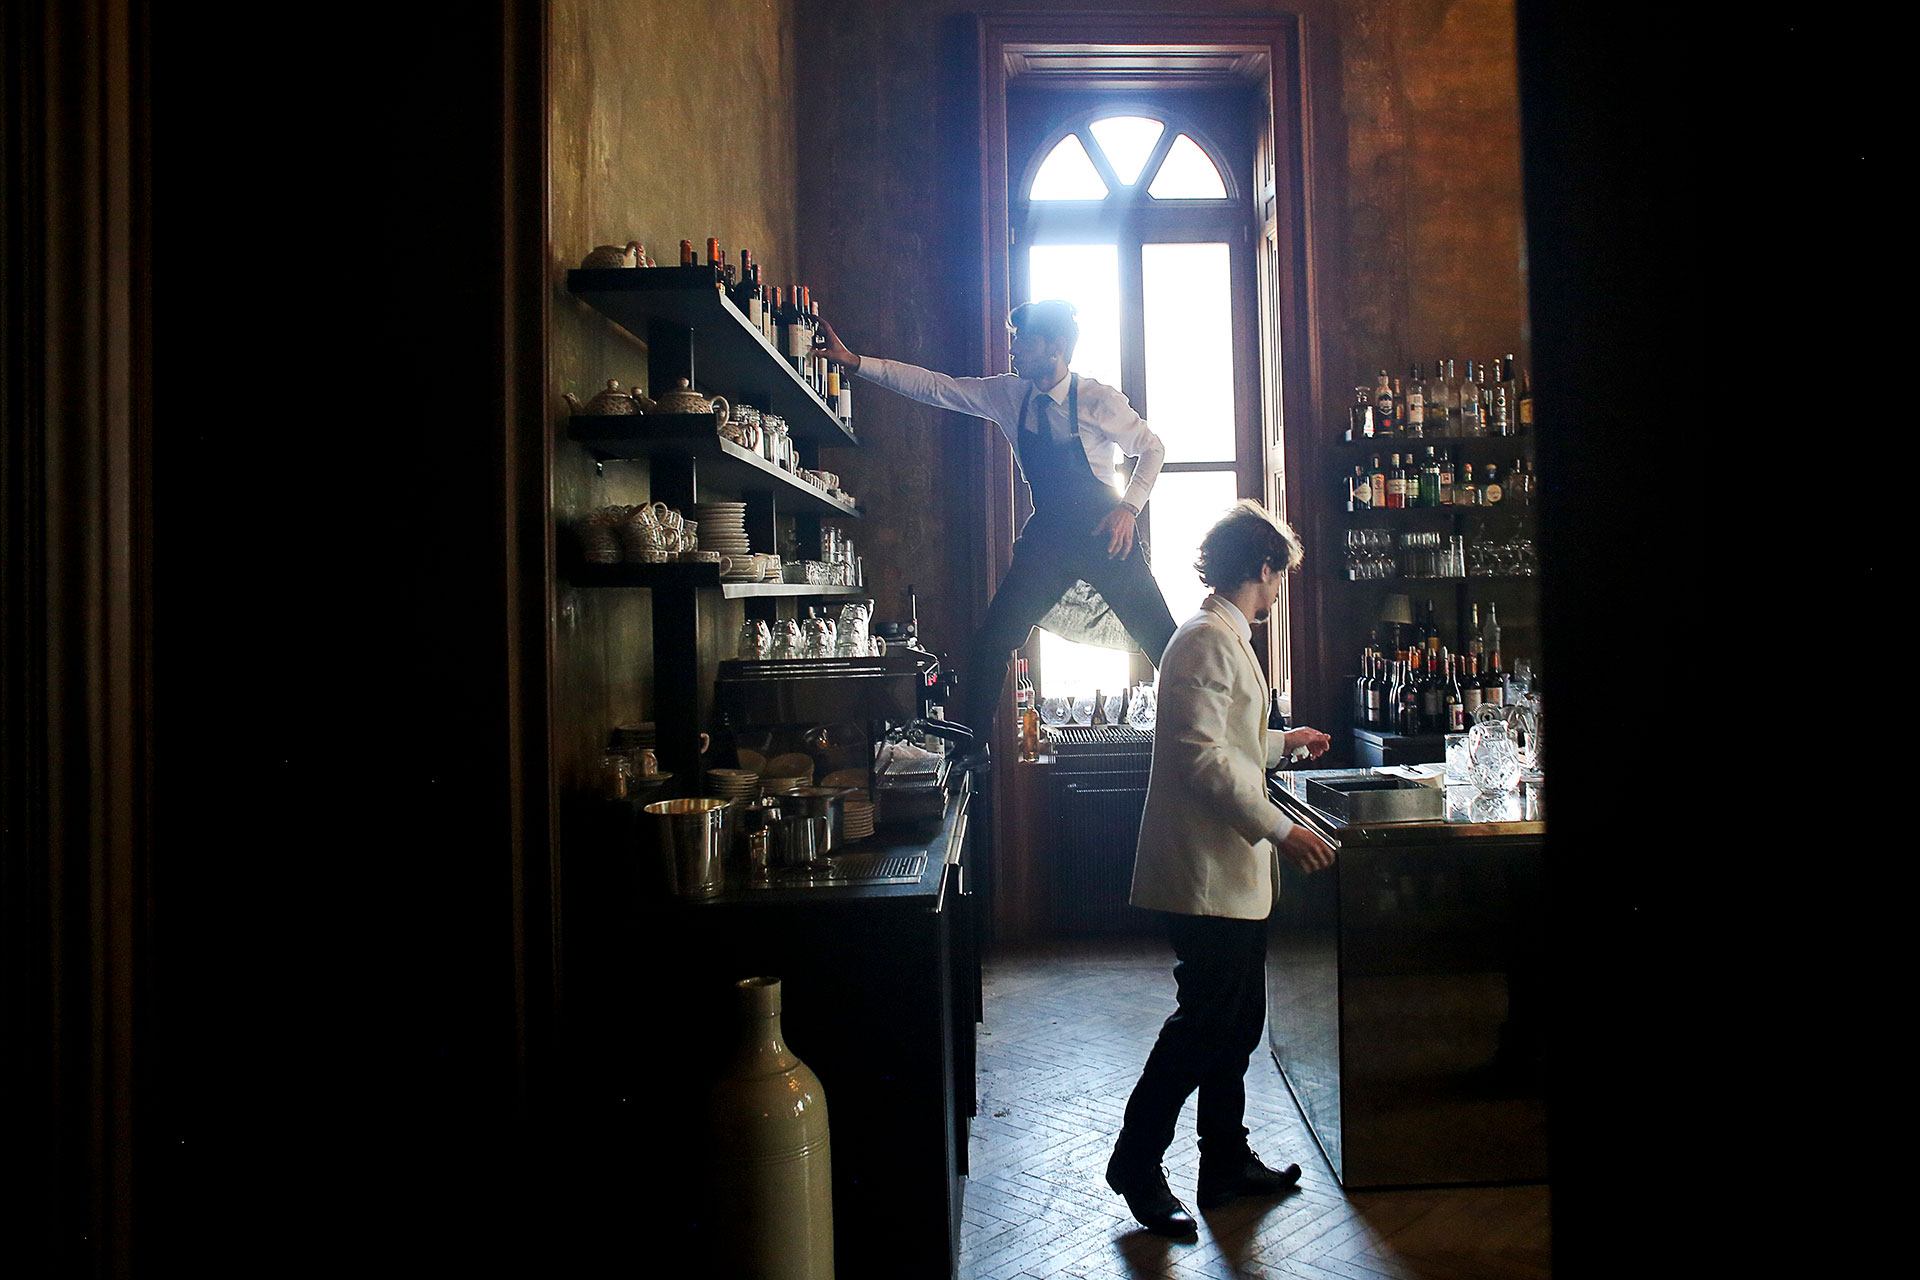 Waiters work in the kitchen of Soho House, Istanbul.